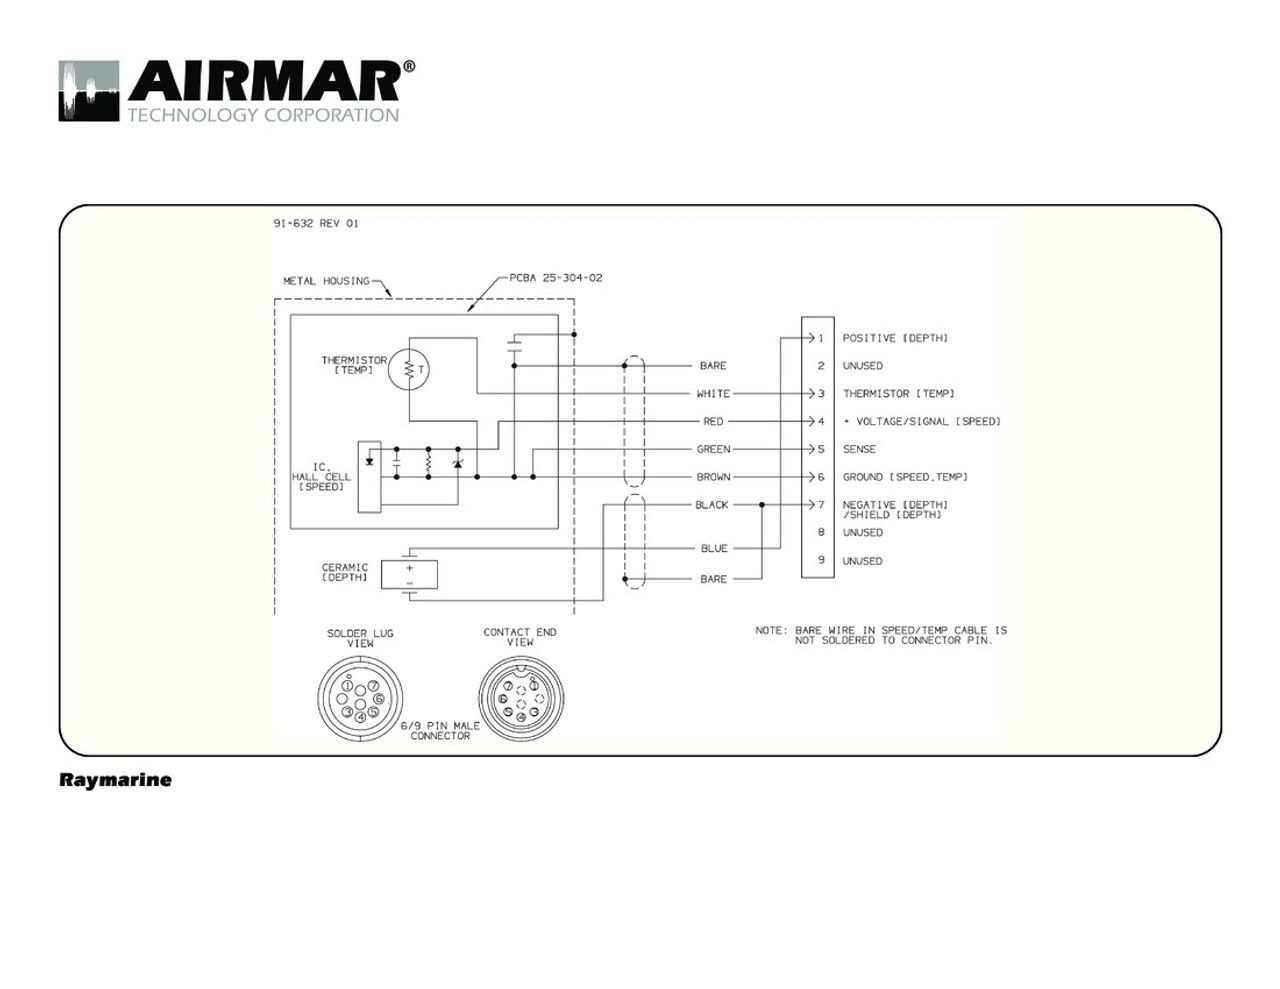 depth speed temperature transducers for raymarine a series with raymarine 9 pin airmar wiring diagram  [ 1280 x 989 Pixel ]